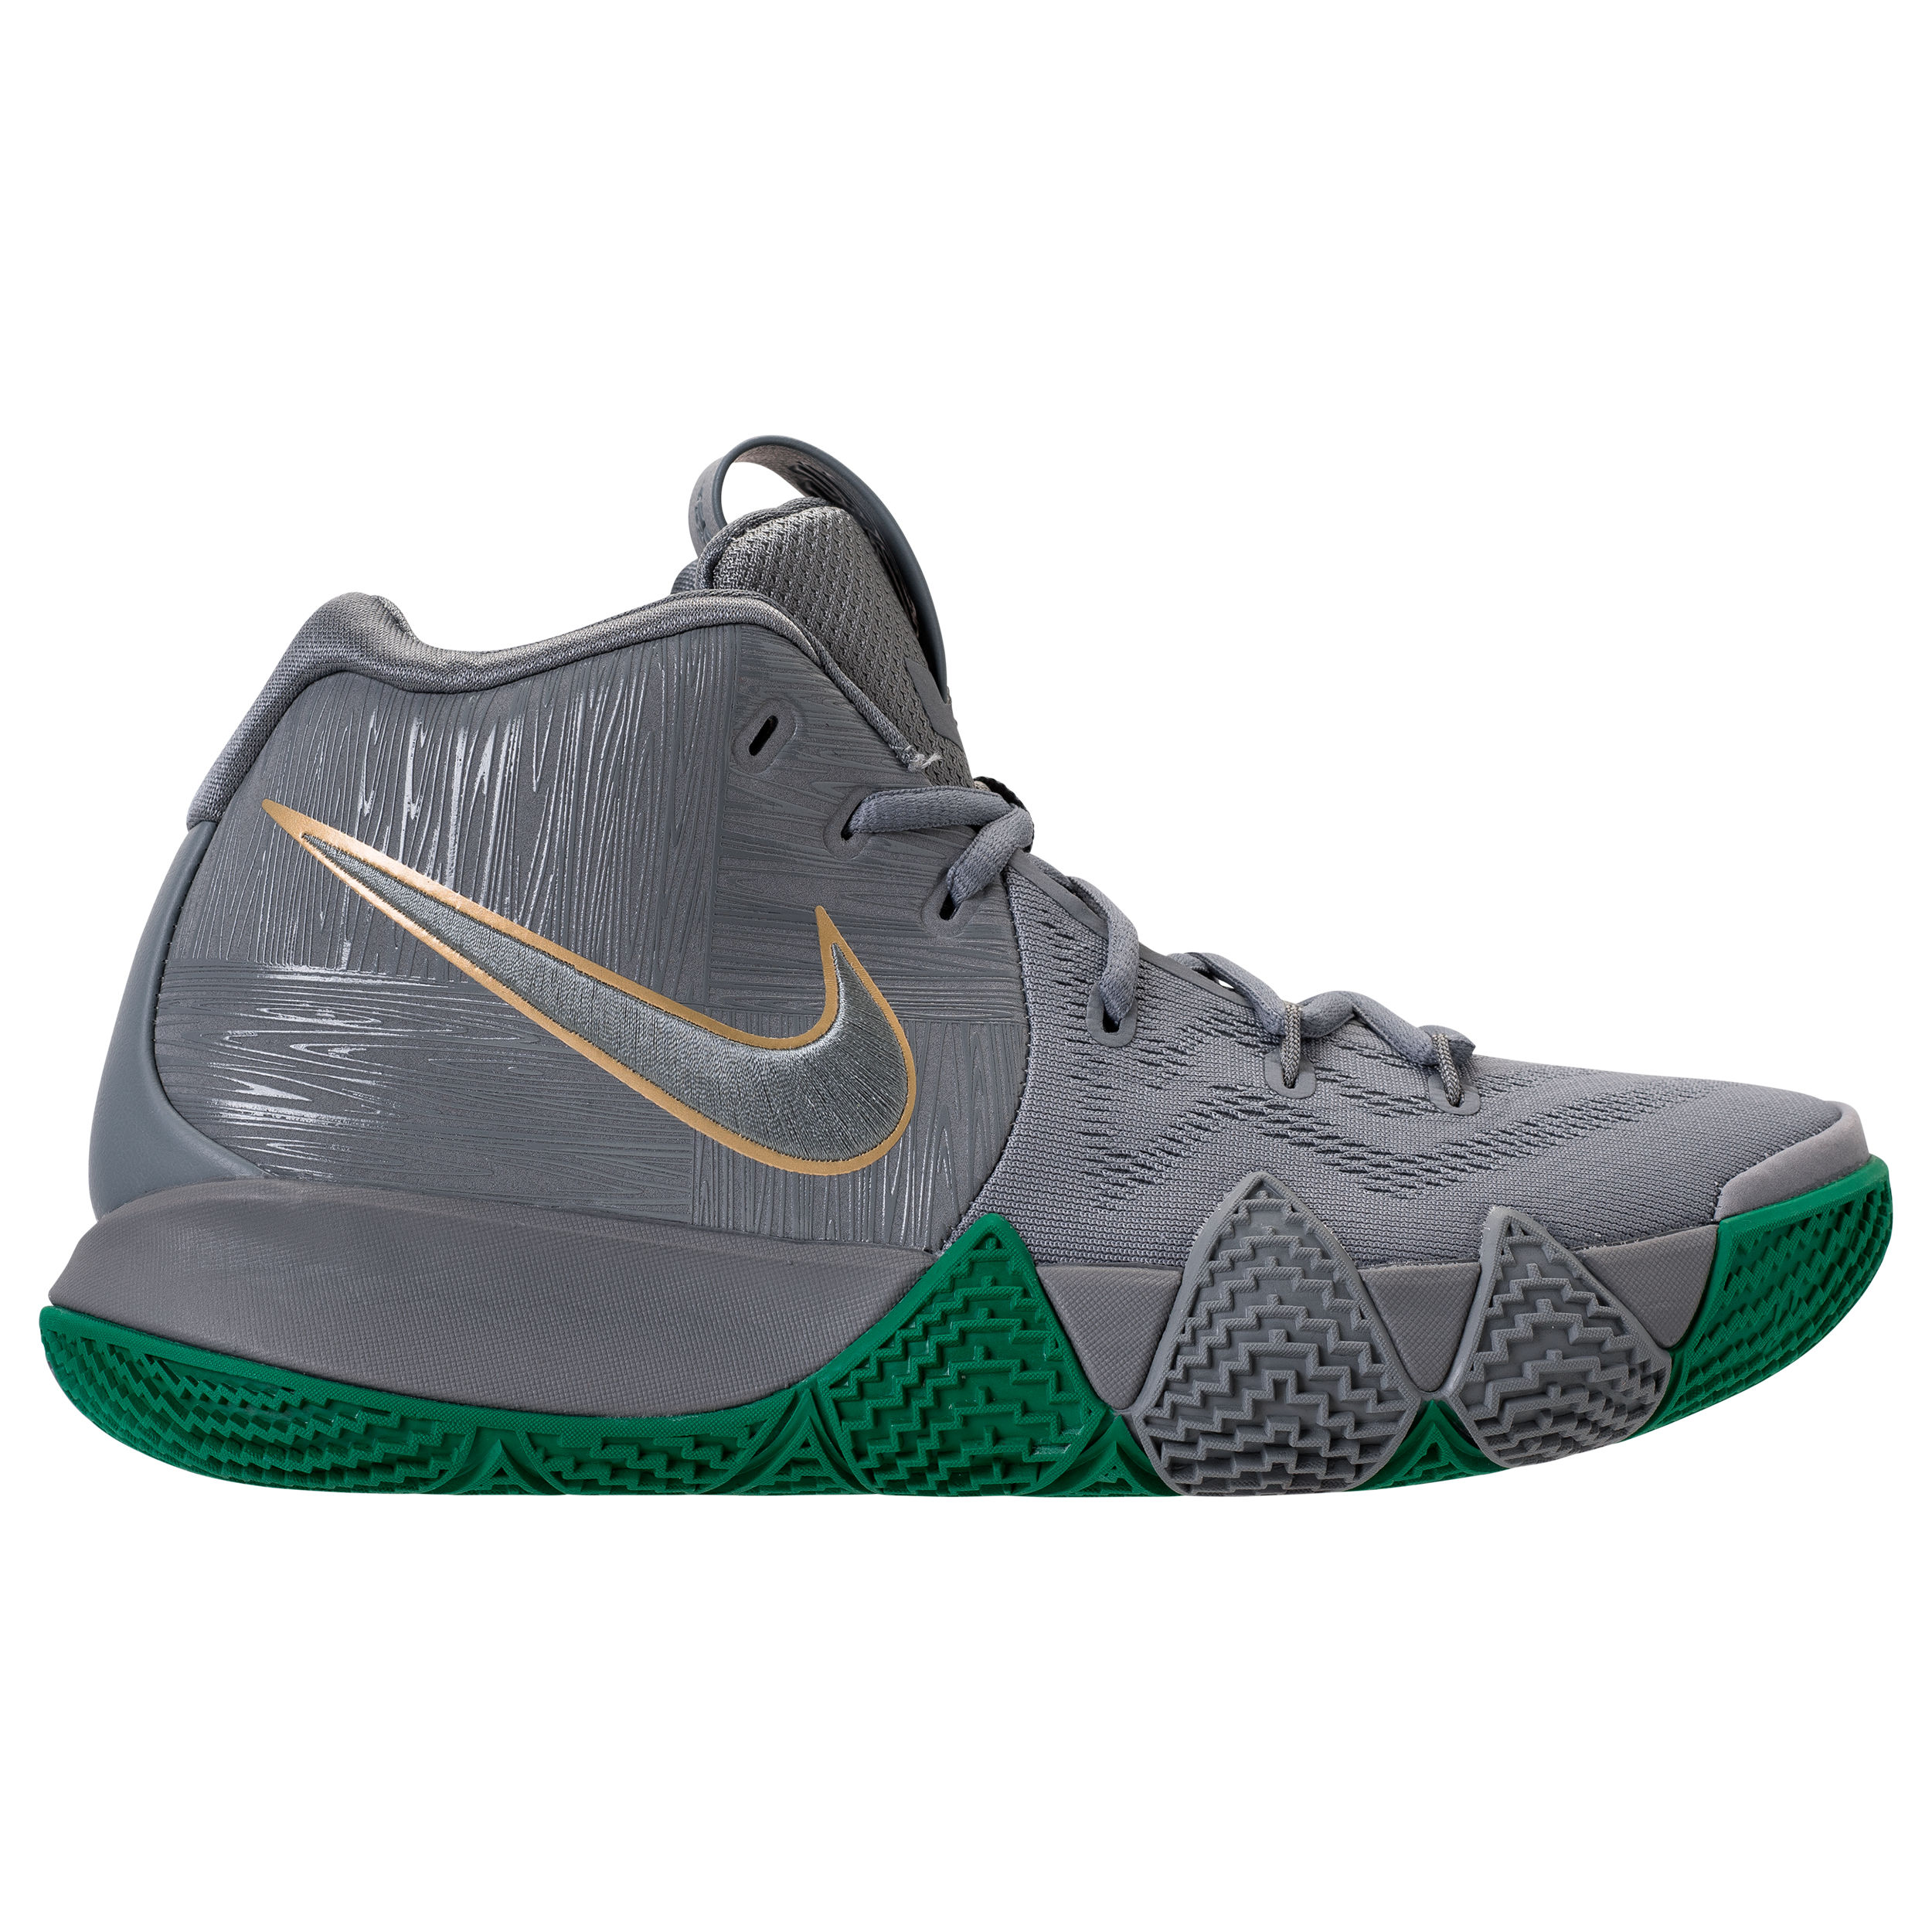 13d6bdc4ae1 The Nike Kyrie 4  City of Guardians  Releases Next Week at Eastbay ...